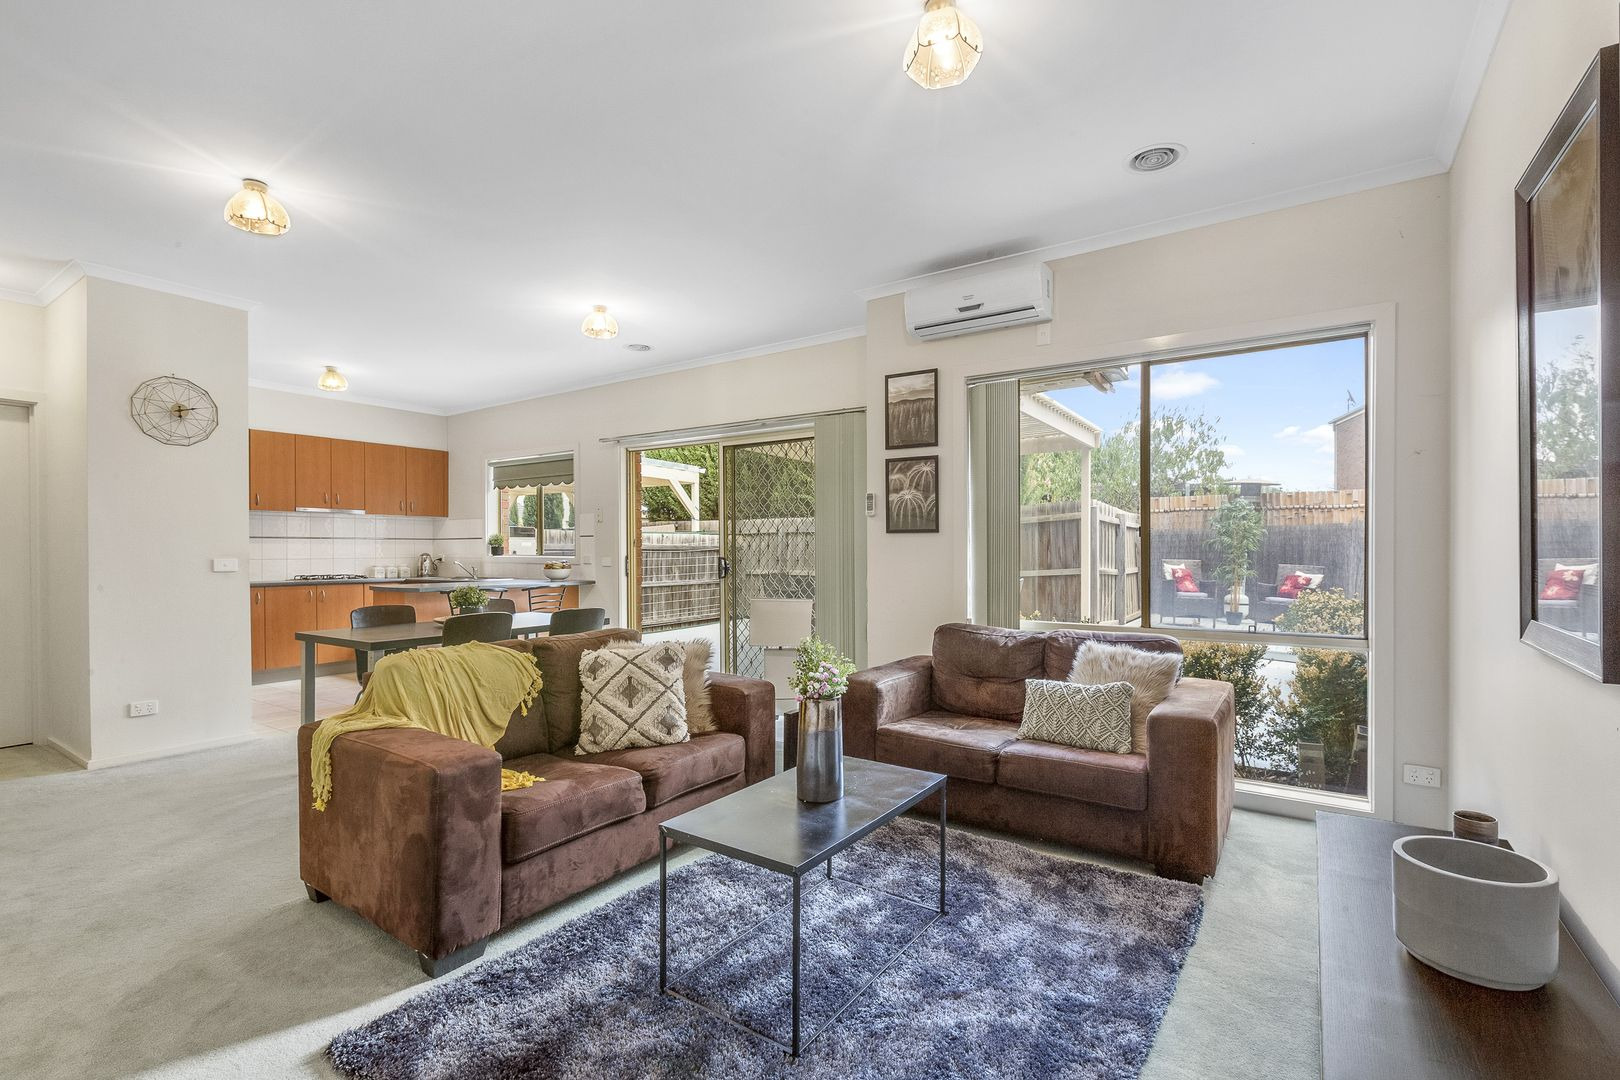 73 The Glades, Taylors Hill VIC 3037, Image 2